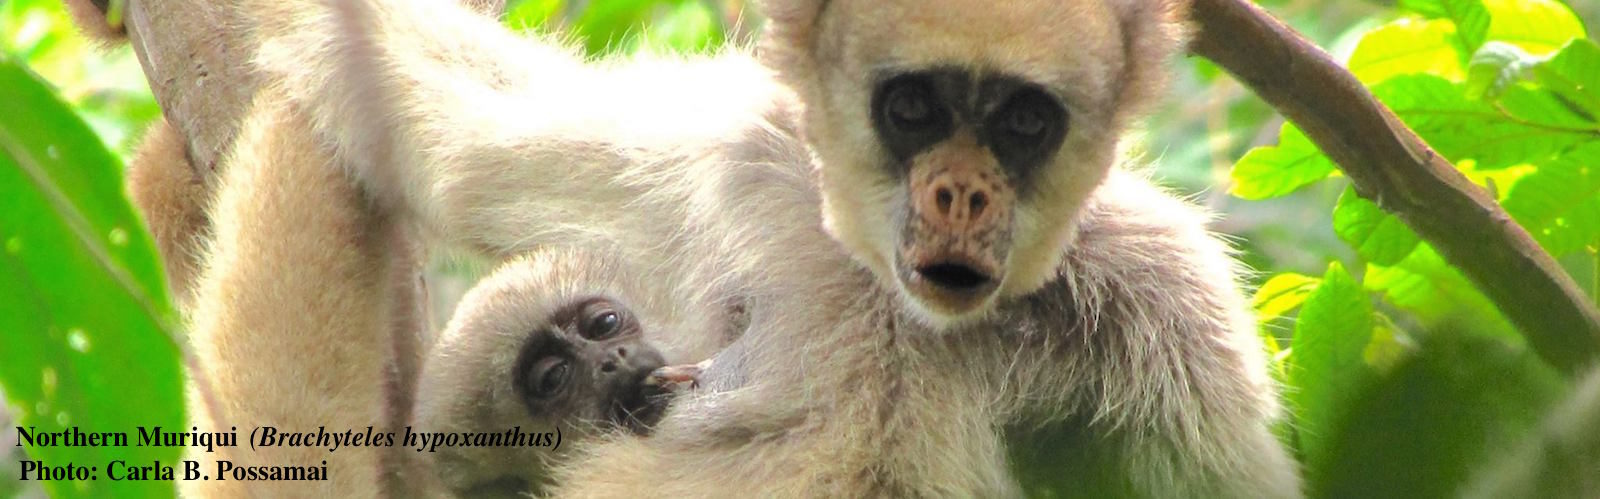 Northern Muriqui with baby